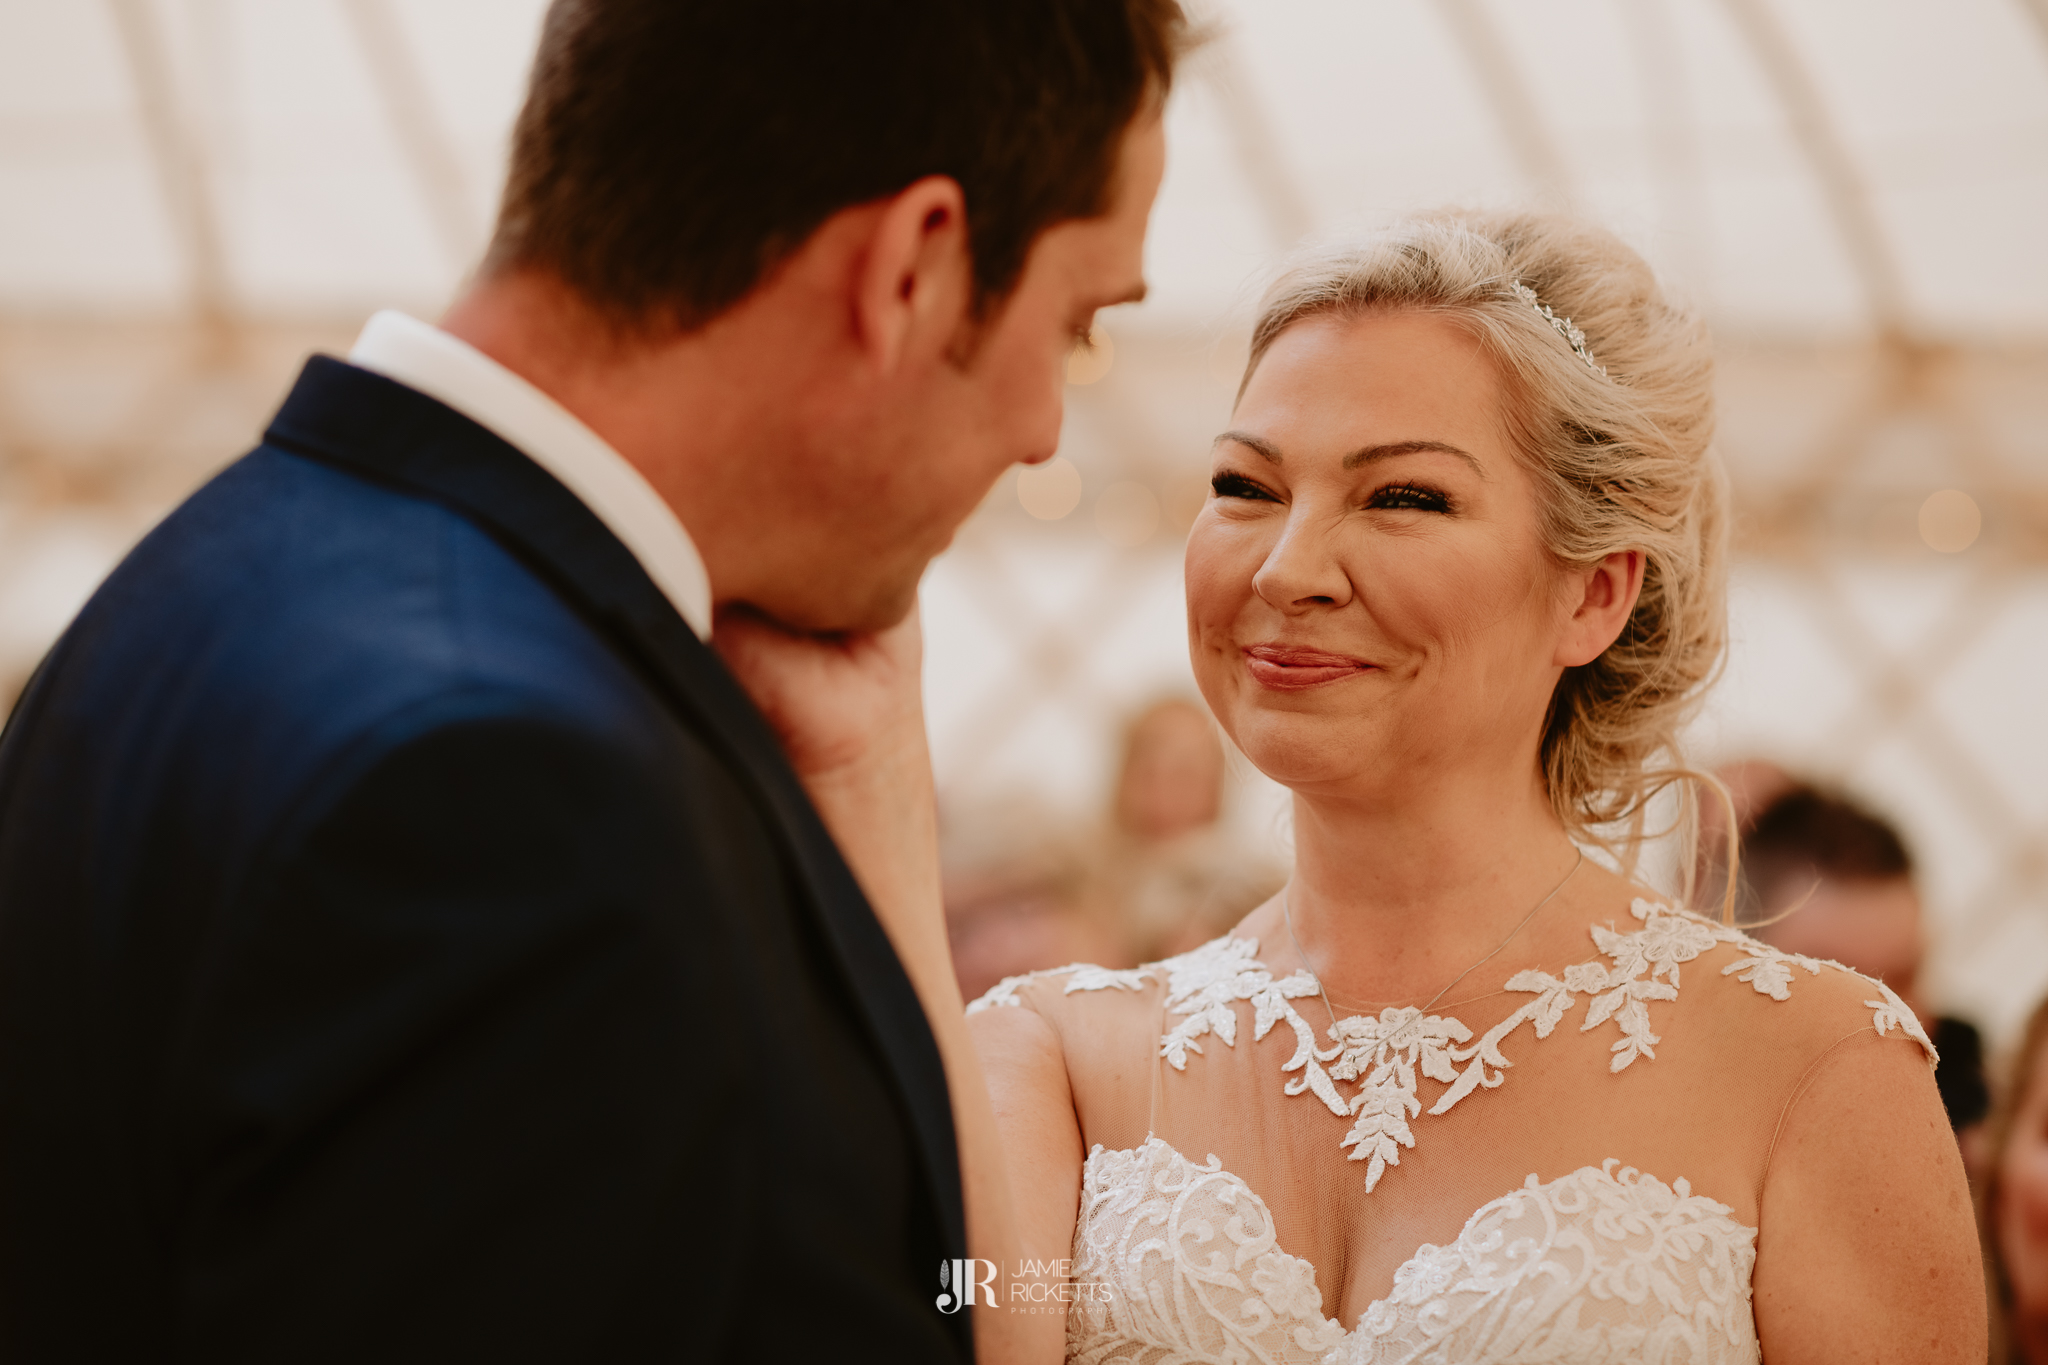 Wroxeter-Hotel-Wedding-Photography-In-Shropshire-By-Shropshire-Wedding-Photographer-Jamie-Ricketts-063.JPG